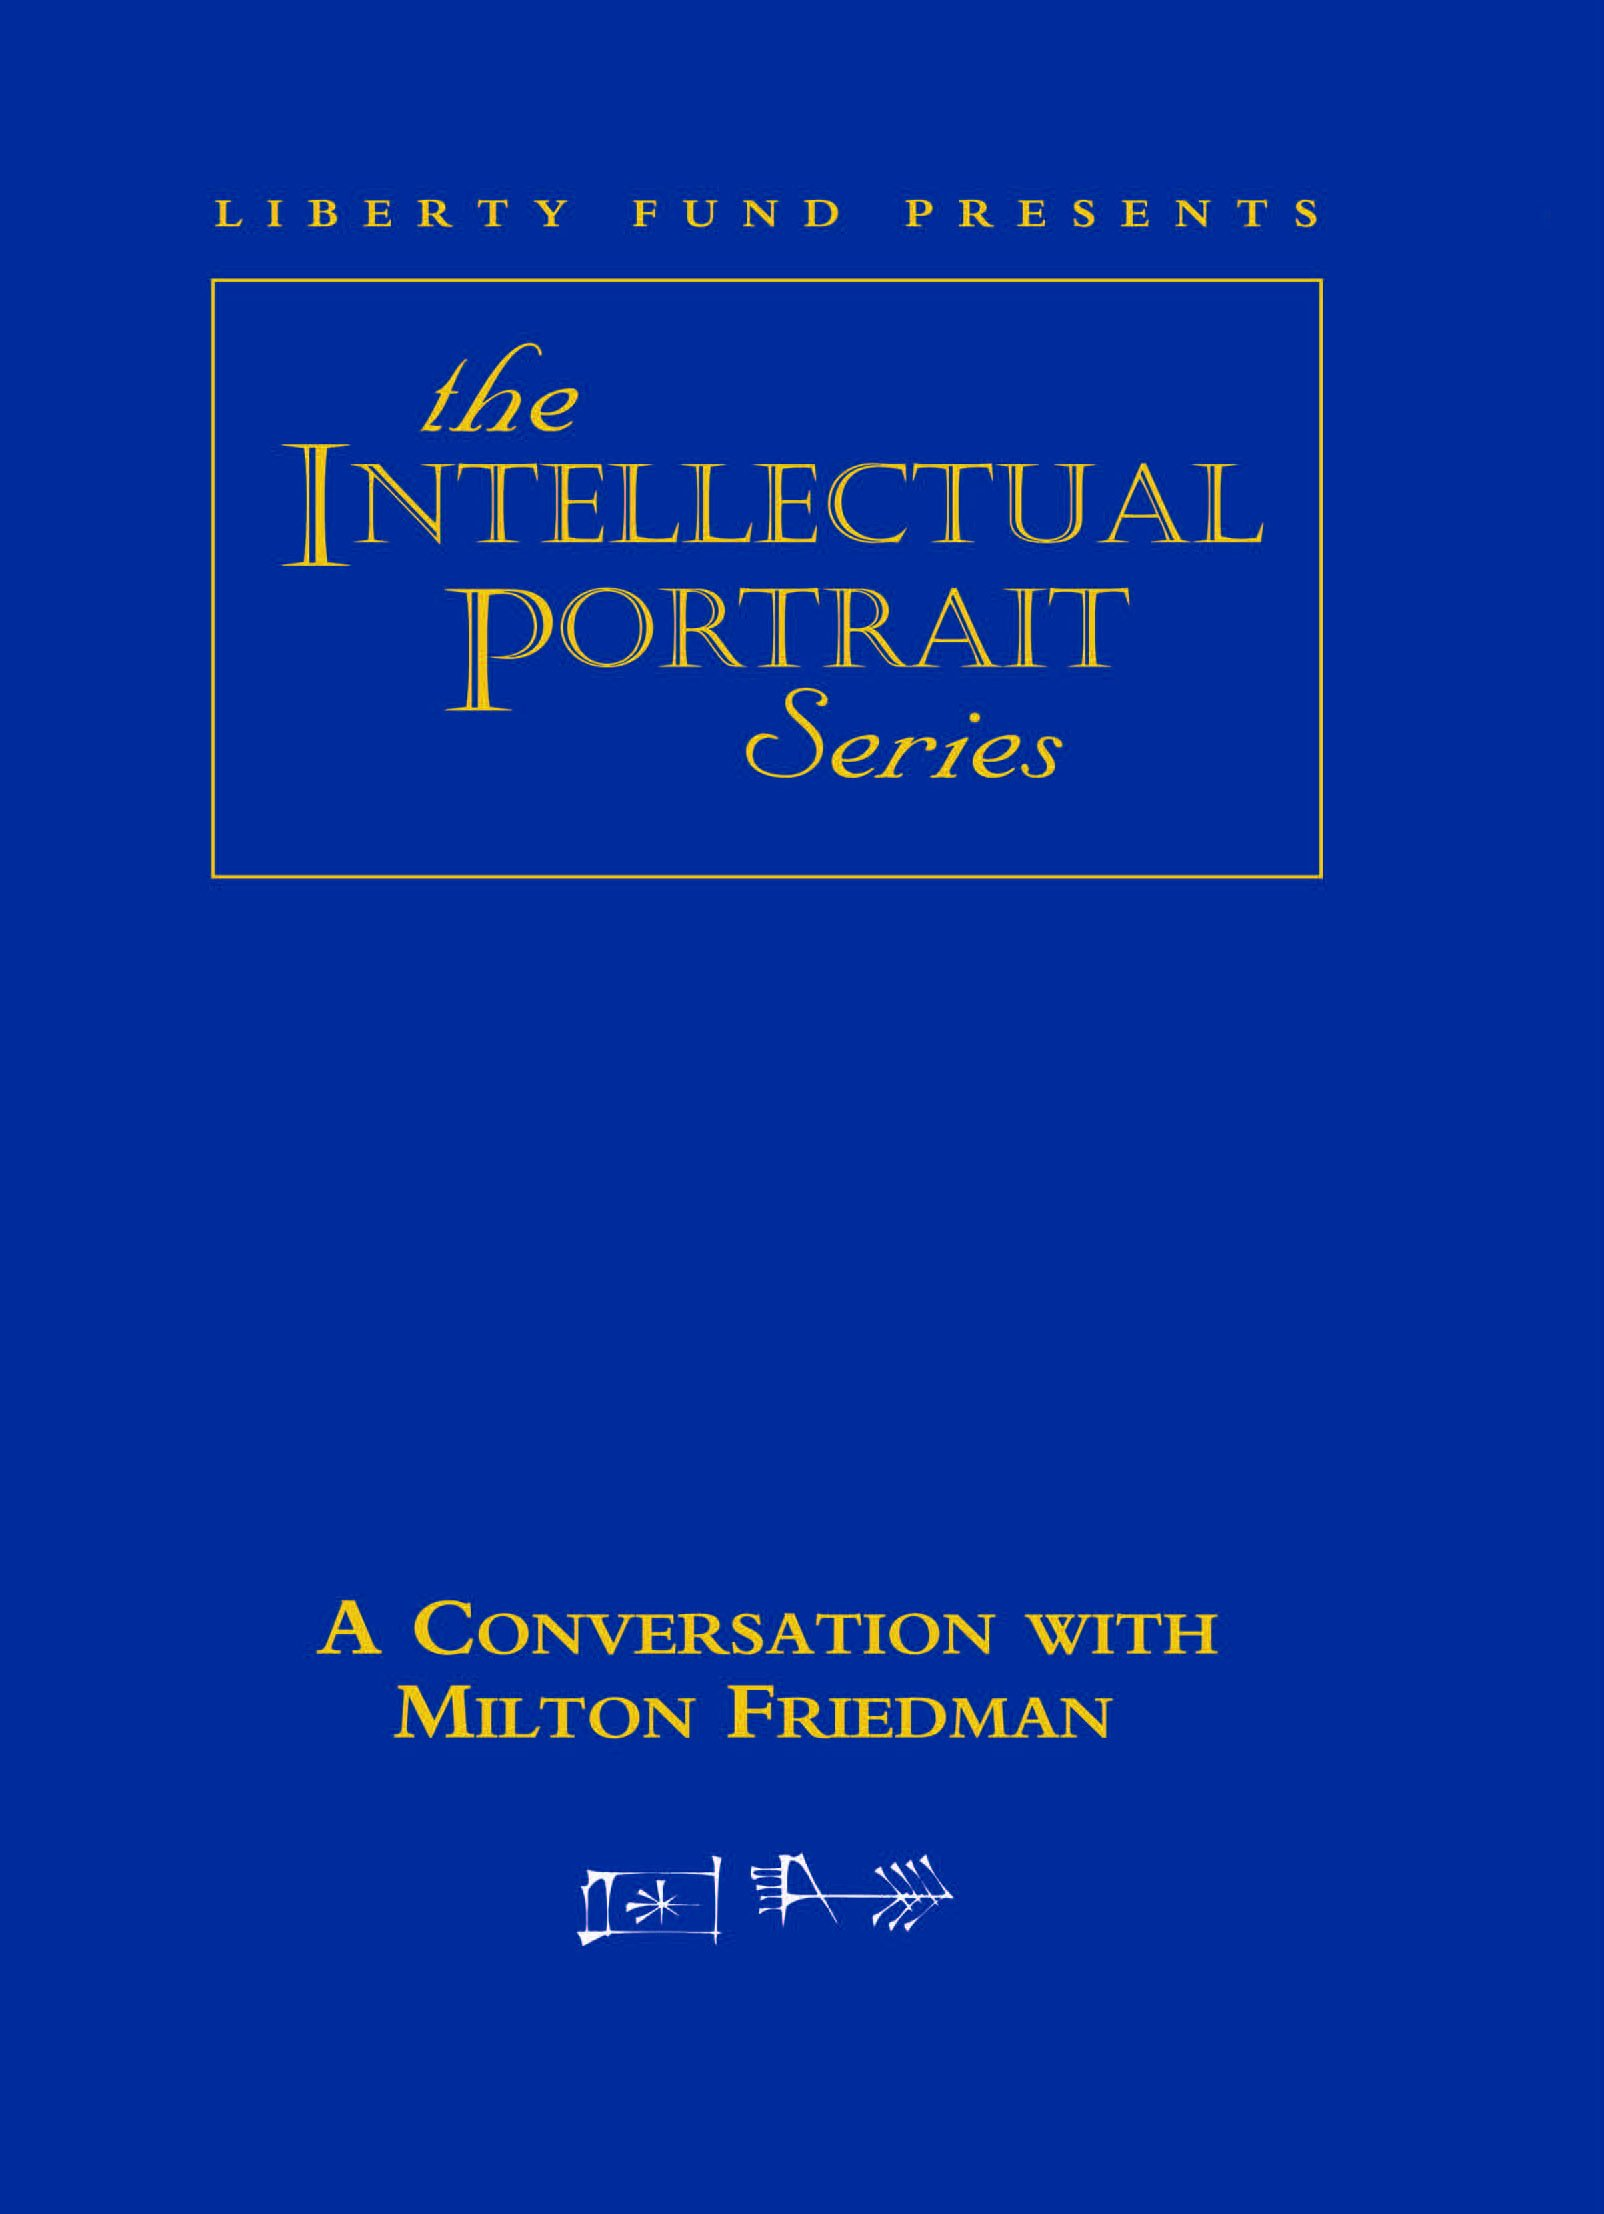 Download Milton Friedman DVD (Intellectual Portrait Series) PDF